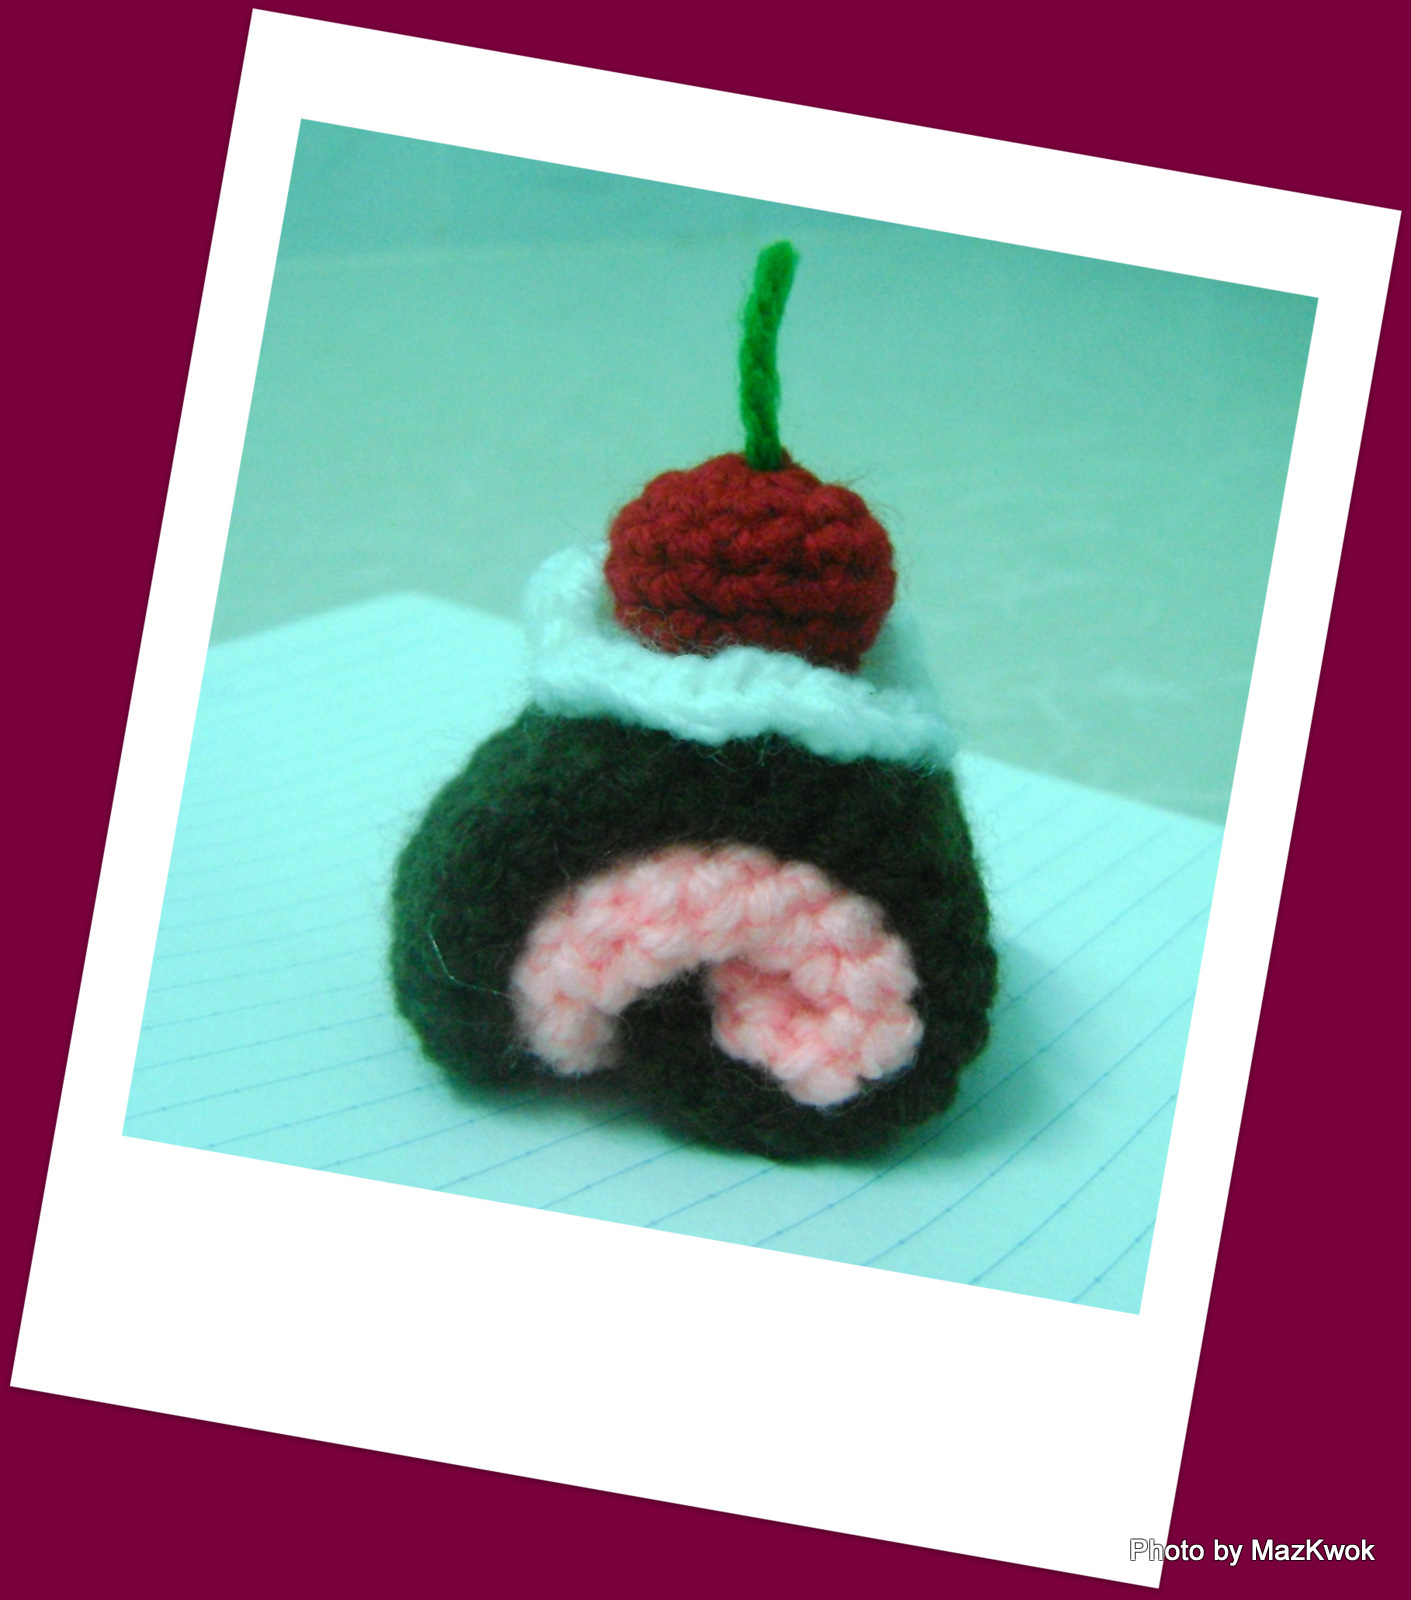 Crochet Patterns For Sweet Roll Yarn : Be A Crafter xD: Mini Christmas Swiss roll - free amigurumi pattern